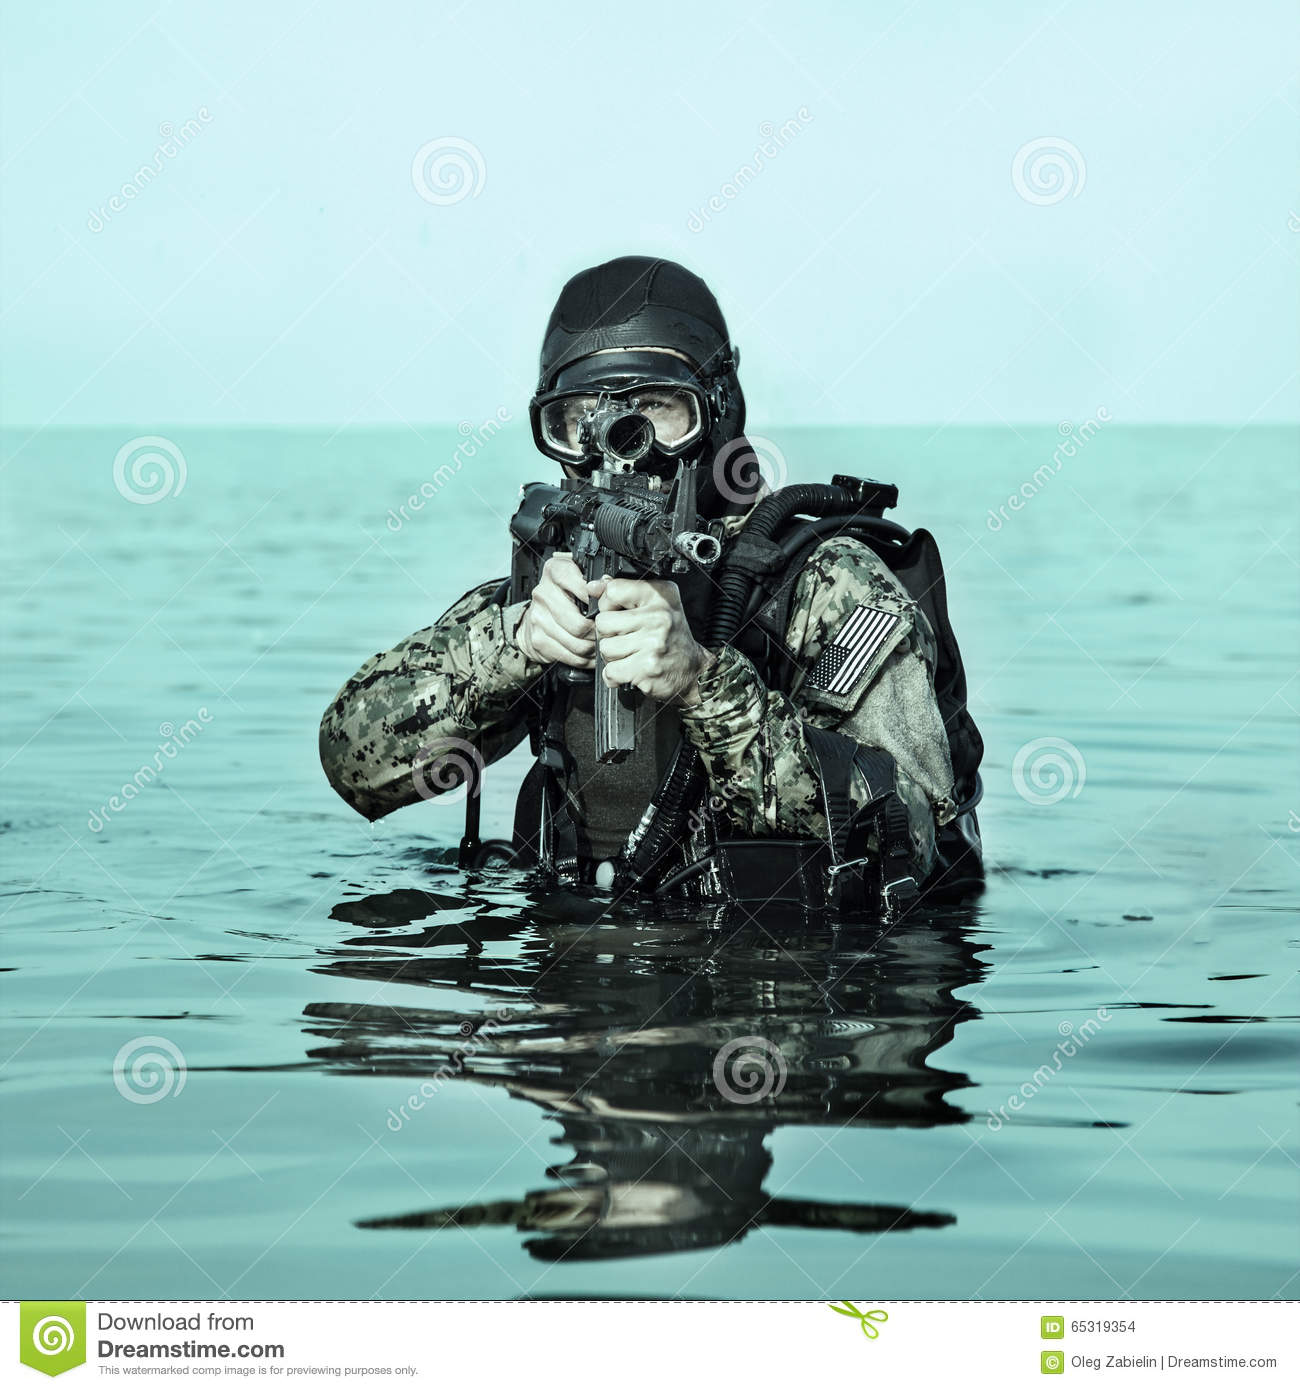 Free online sex tv wife never wants to have sex - Navy seal dive gear ...